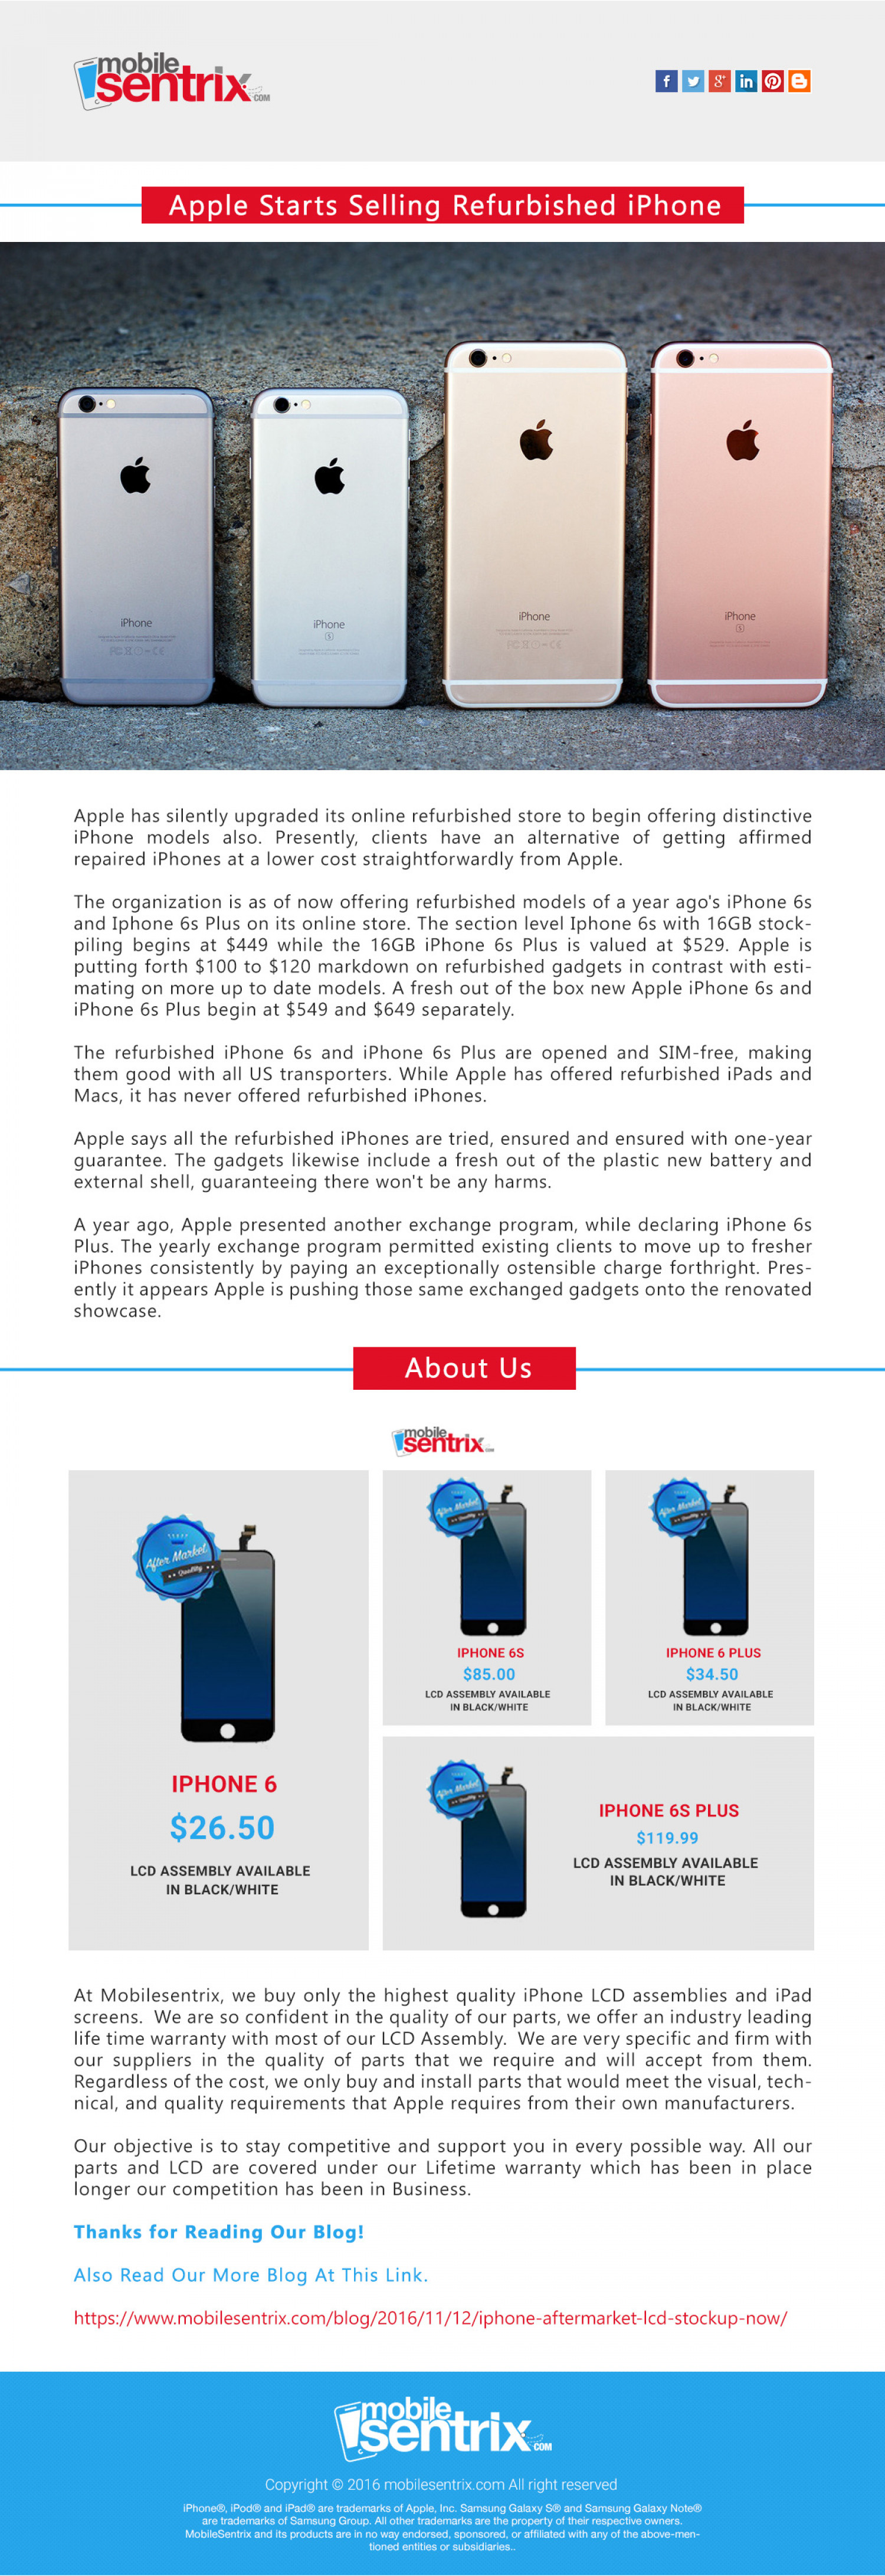 Apple Starts Selling Refurbished iPhone Infographic